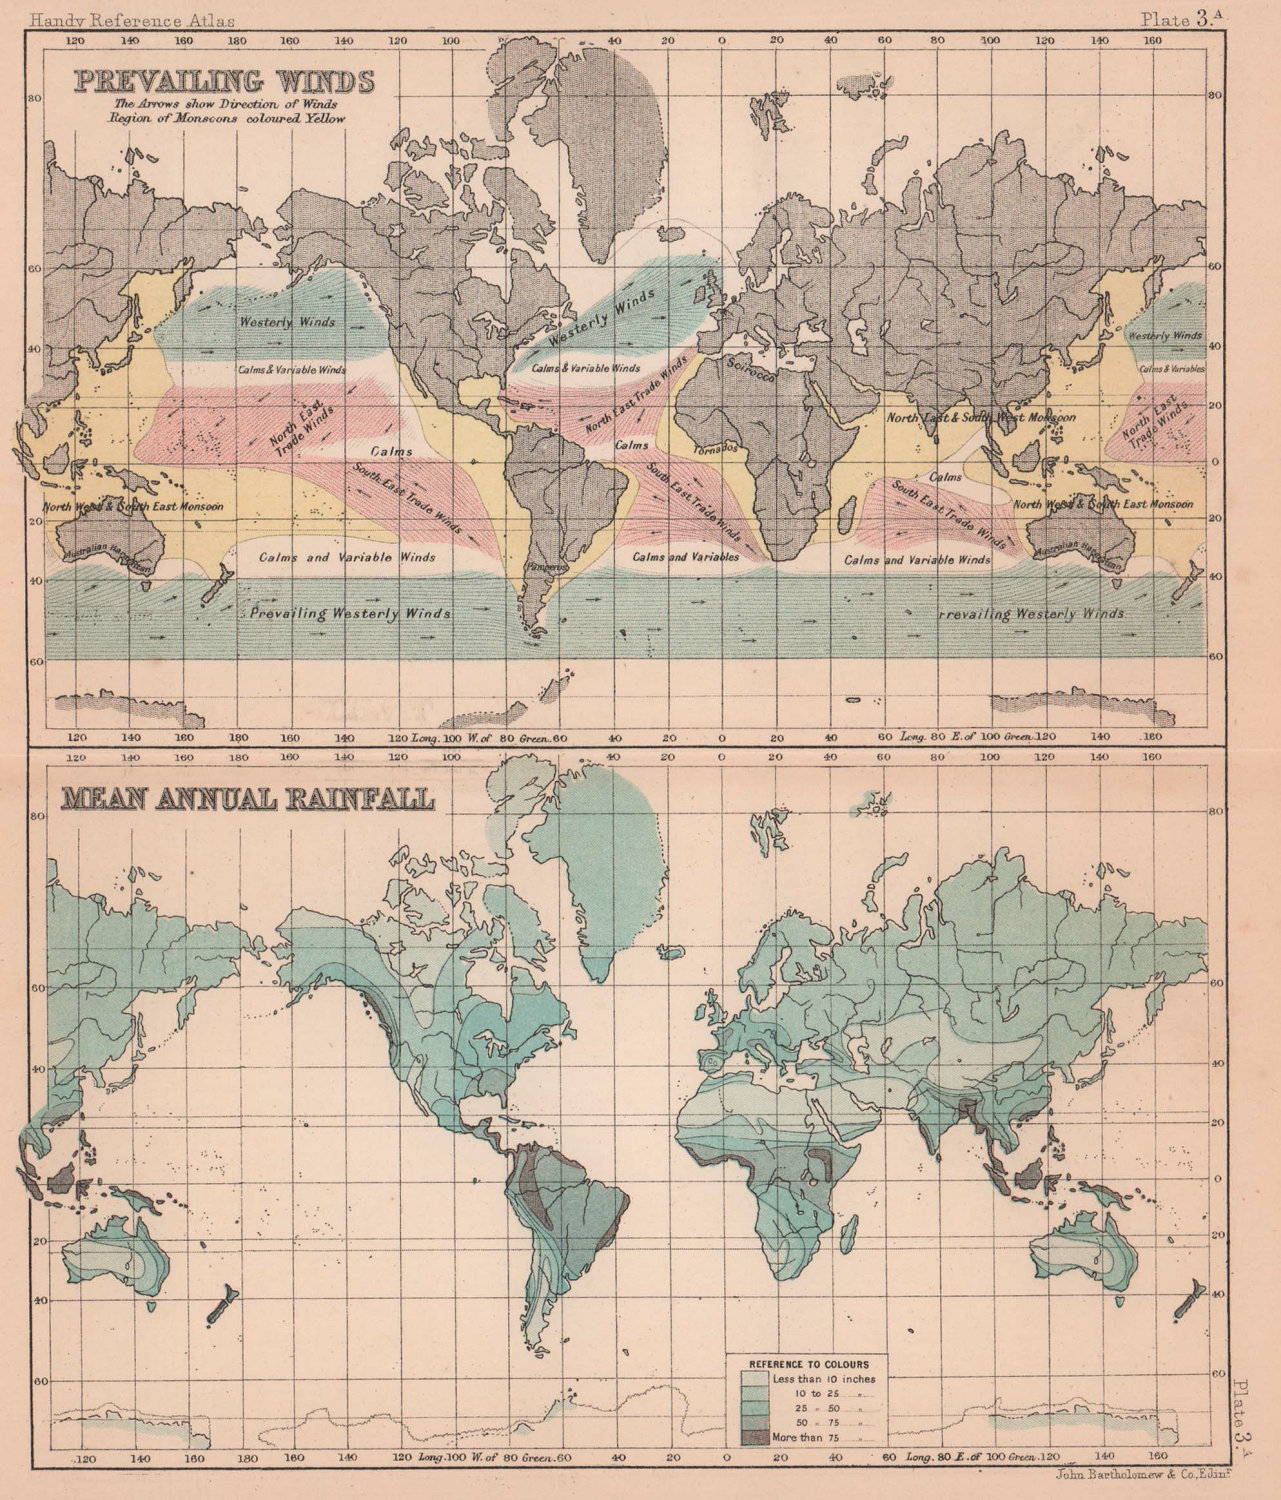 Prevailing Winds & Mean Annual rainfall. World. BARTHOLOMEW 1893 old map